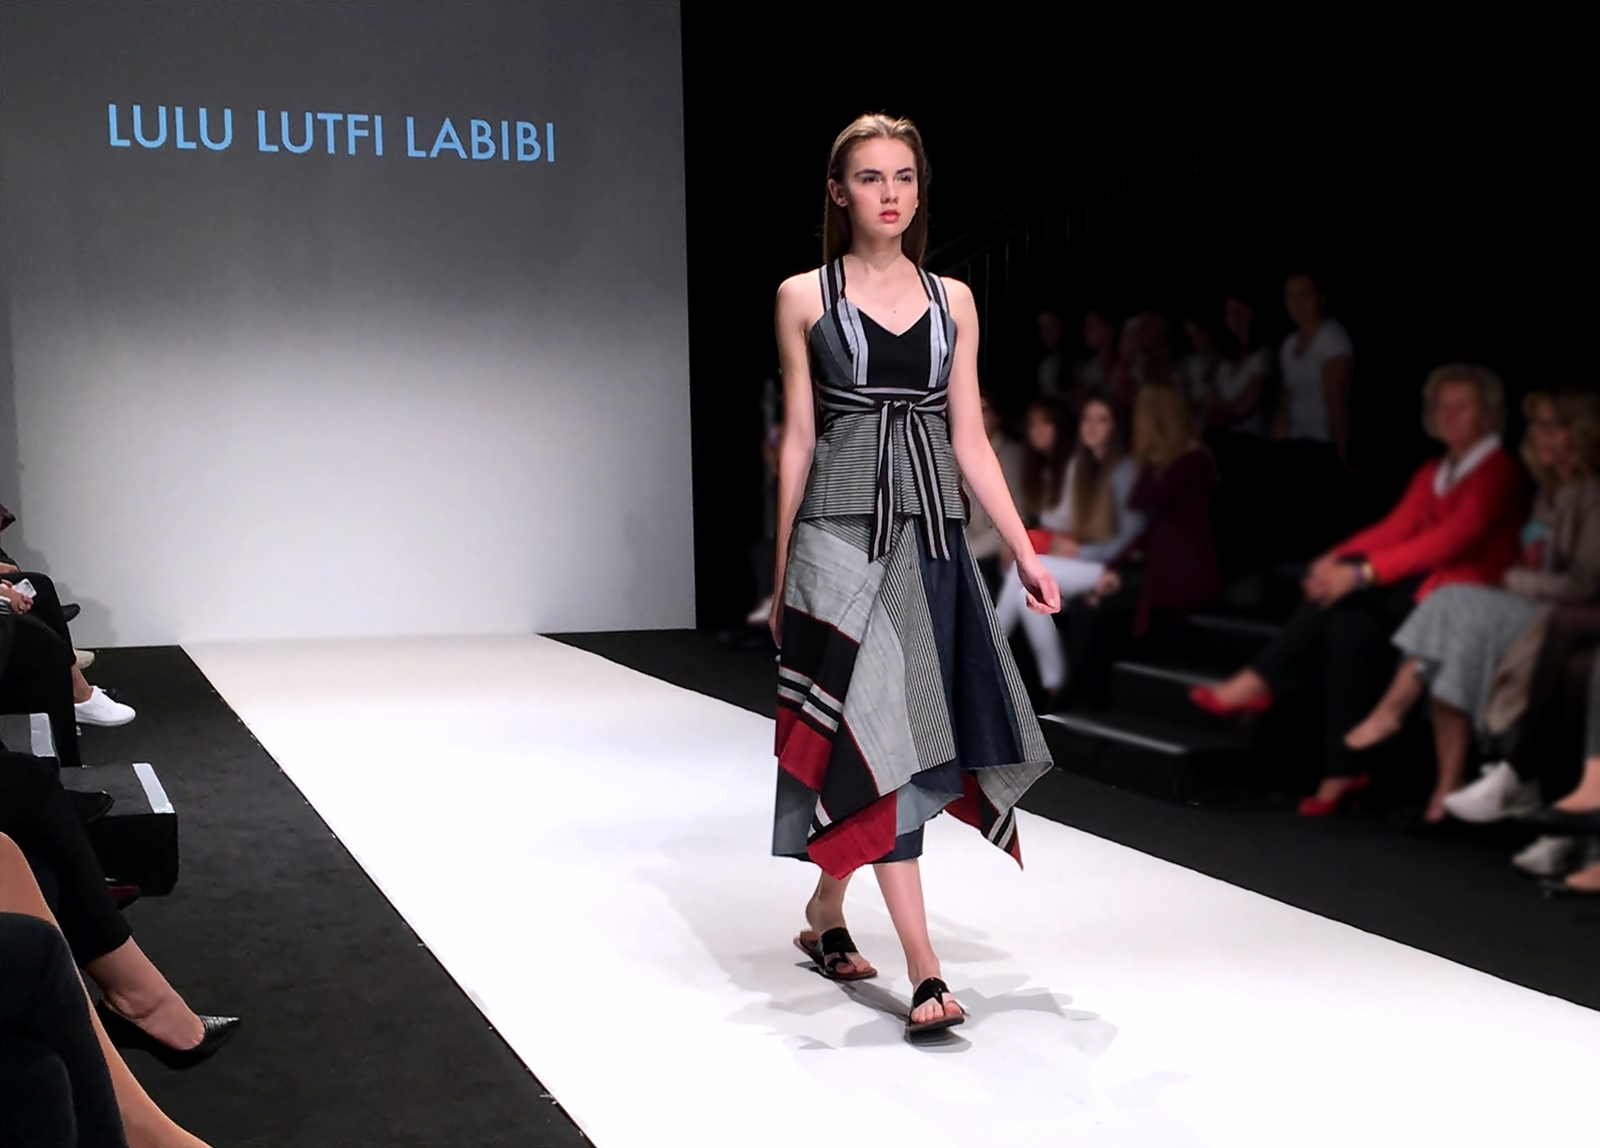 Vienna Fashion Week 2017 - Laufsteg - Show - Lulu Lutfi Labibi Designer - Fashionladyloves by Tamara Wagner - Fashion Blog